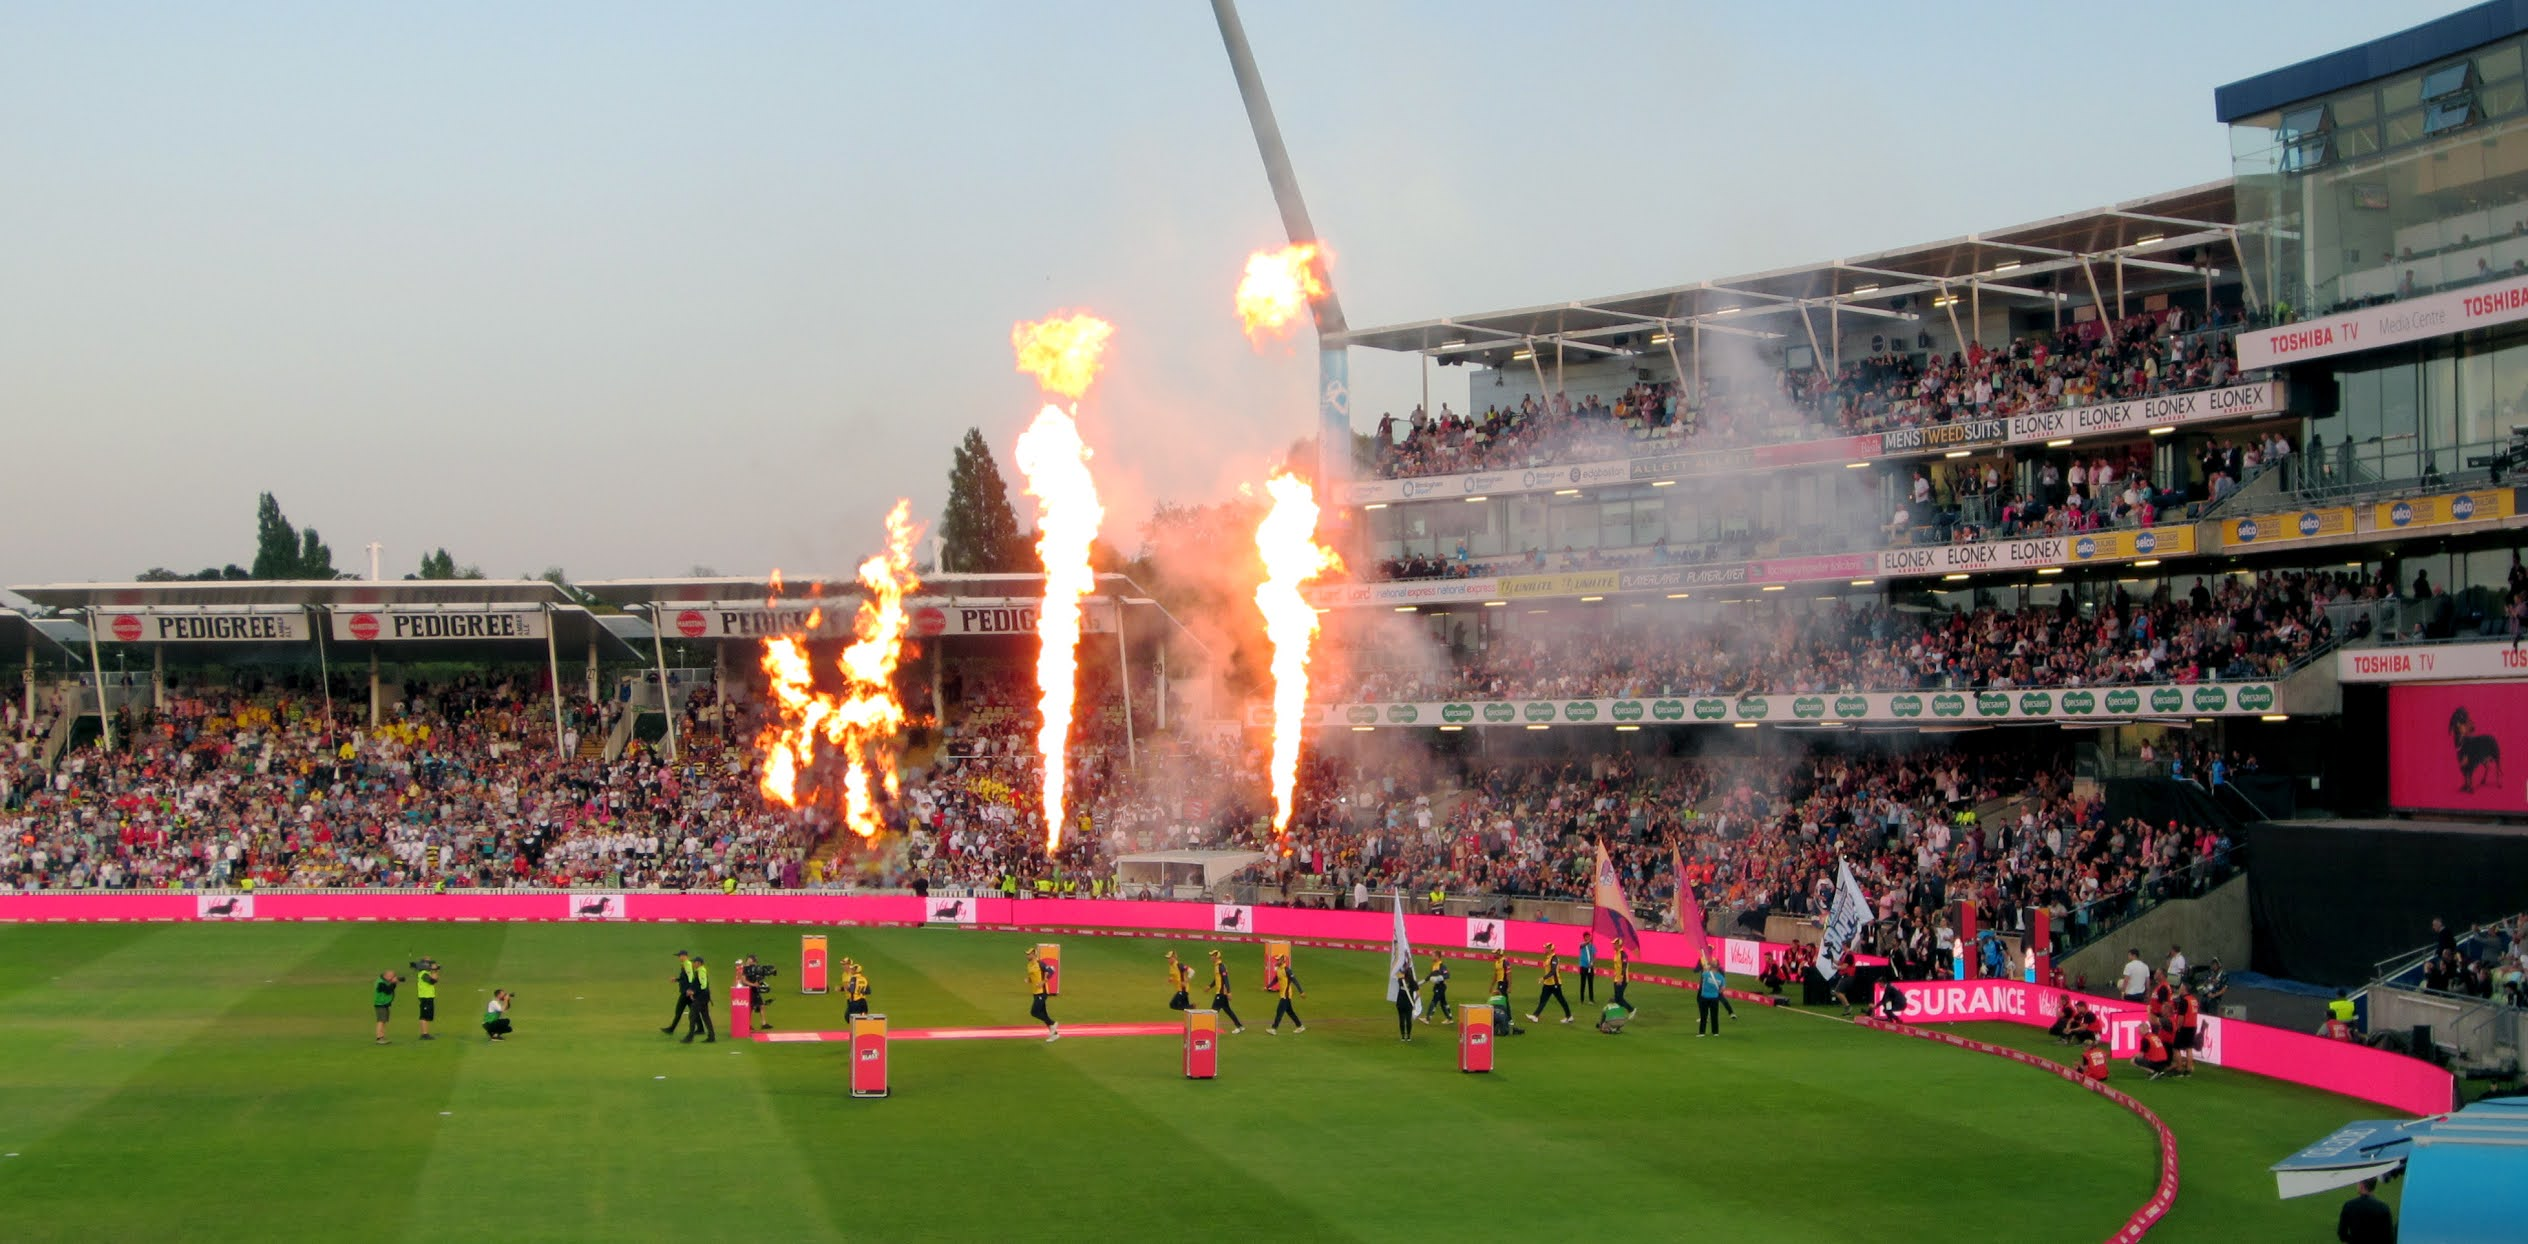 Essex Eagles players enter the field of play for the 2019 Vitality Blast Final